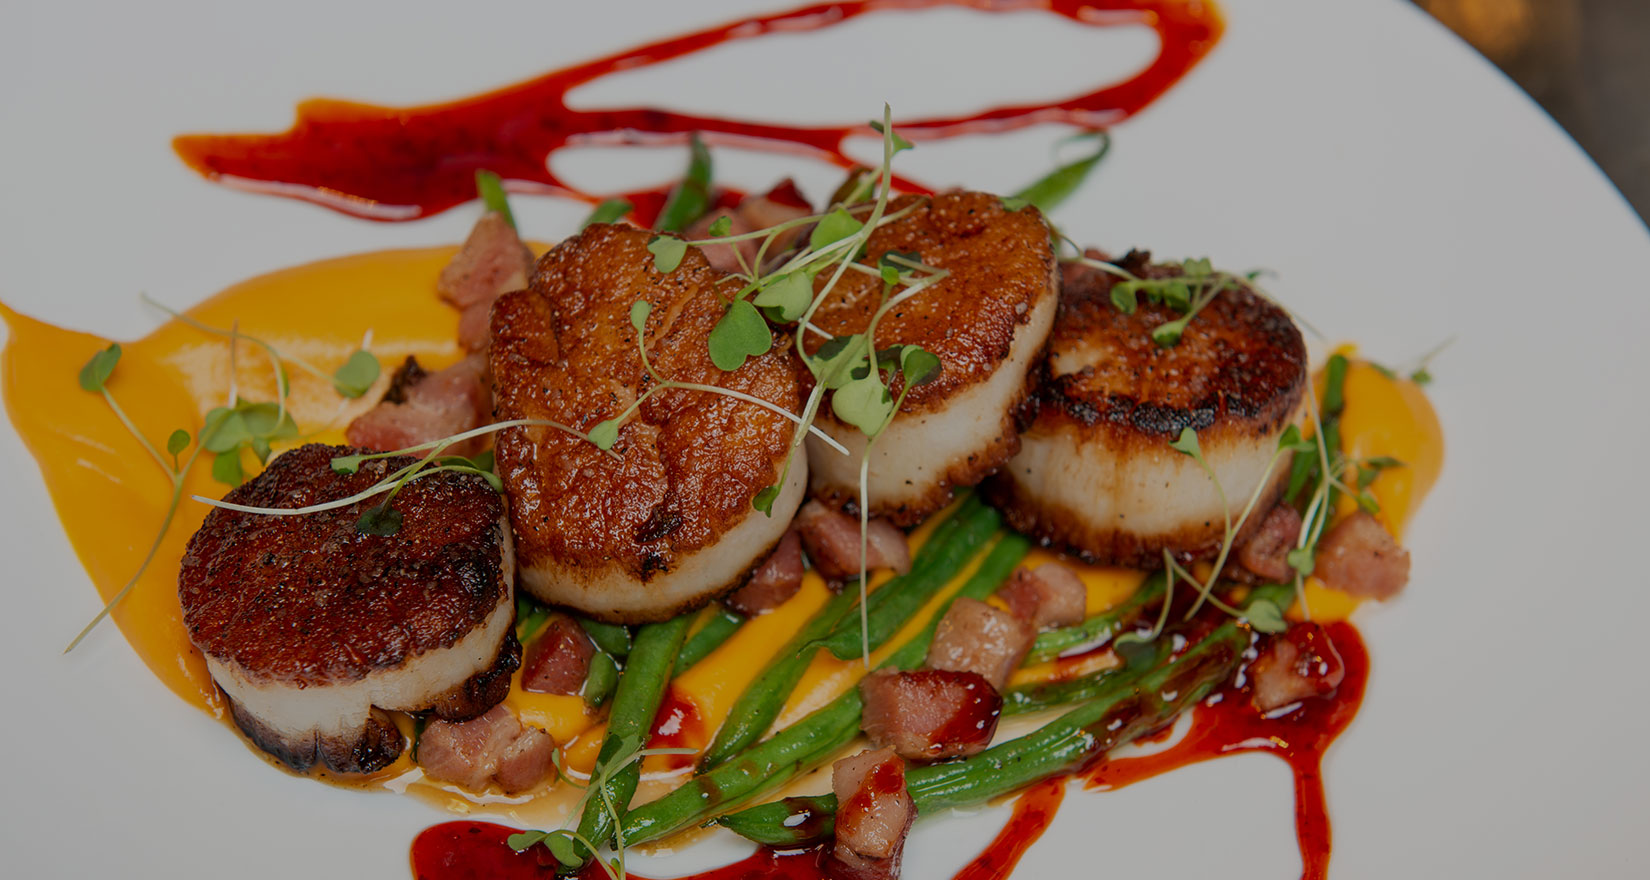 Plate of scallops